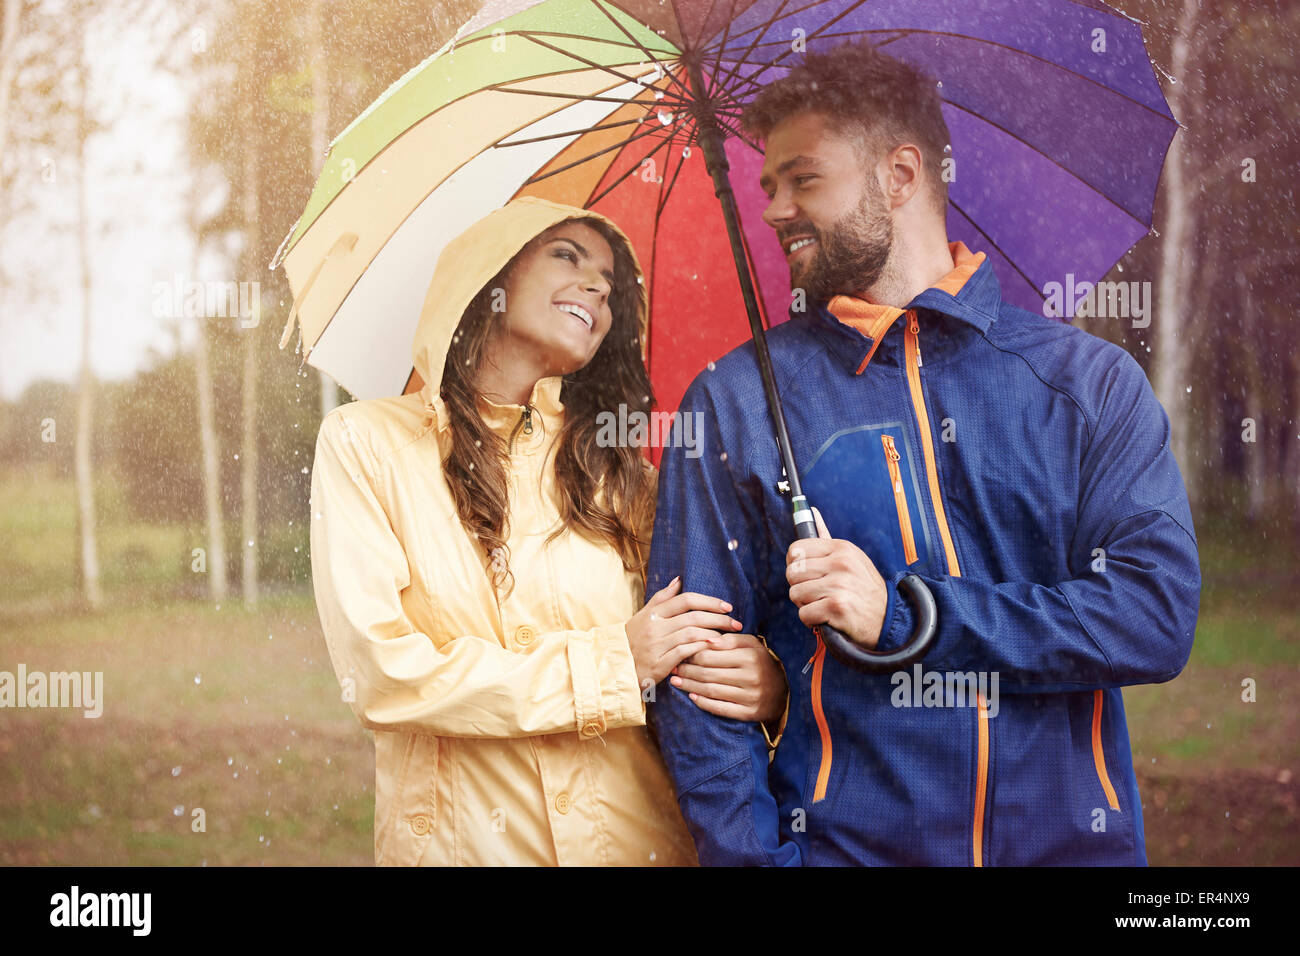 Even rainy day can be nice. Debica, Poland - Stock Image